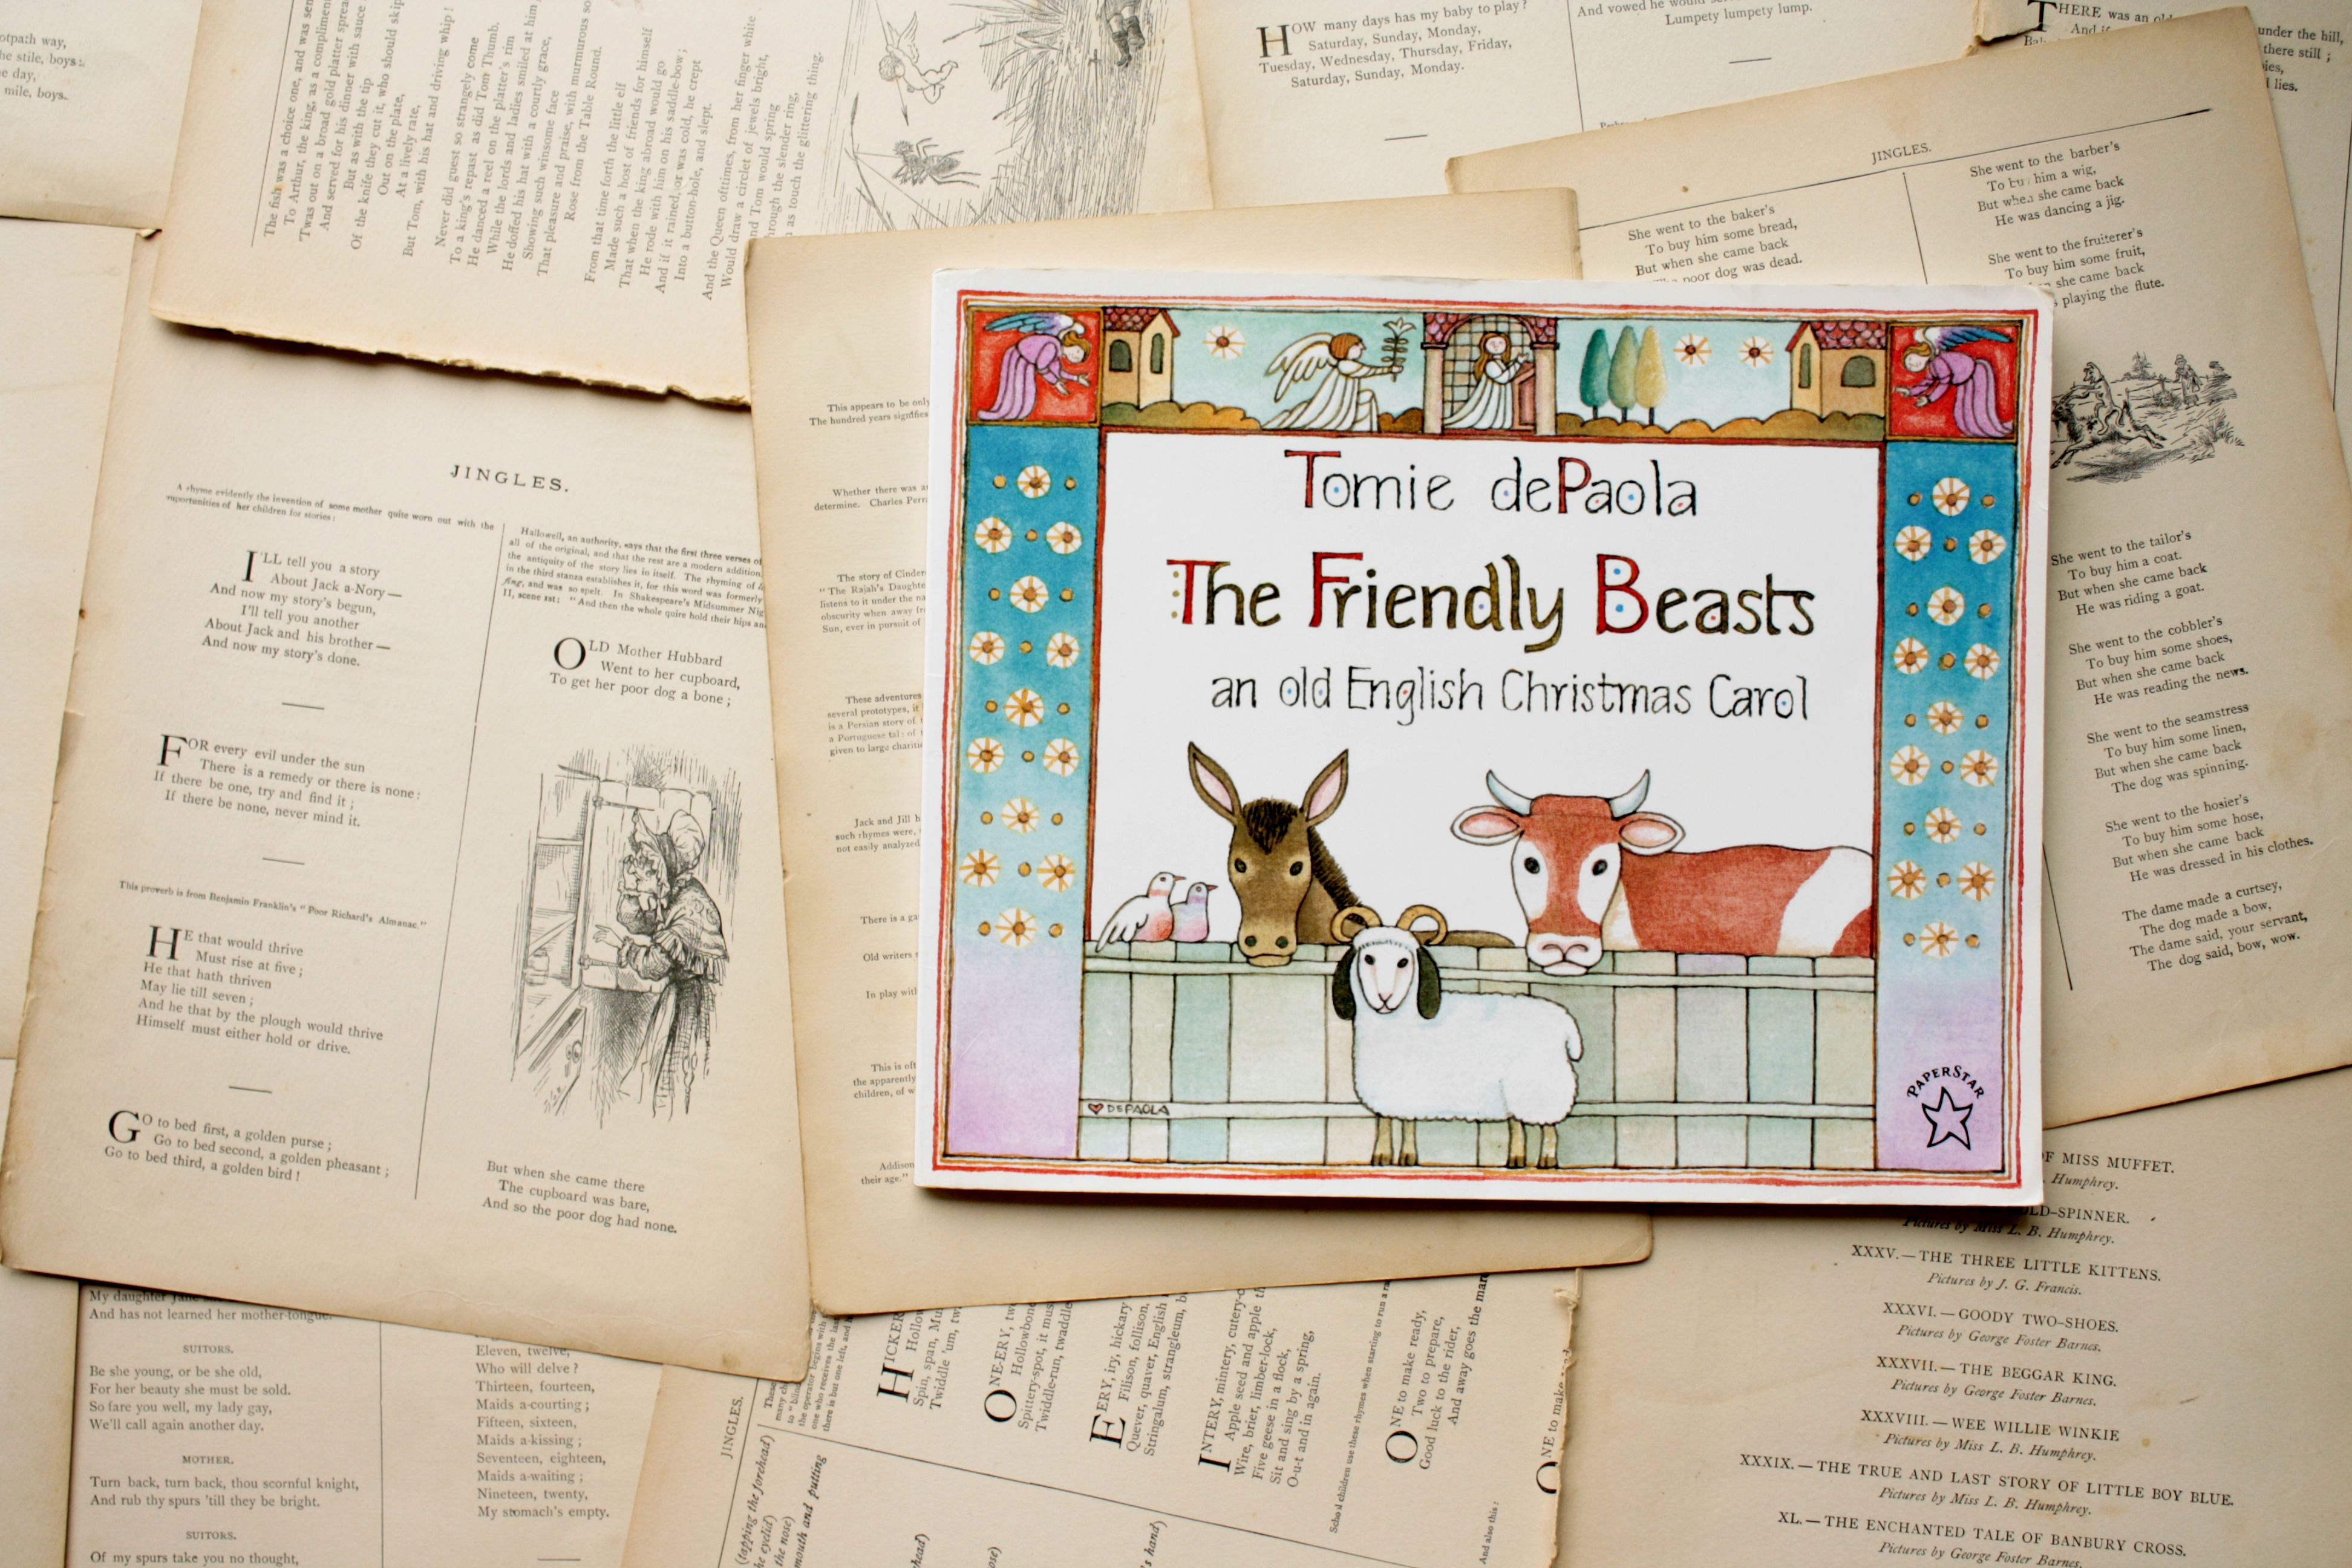 The Friendly Beasts | Tomie dePaola